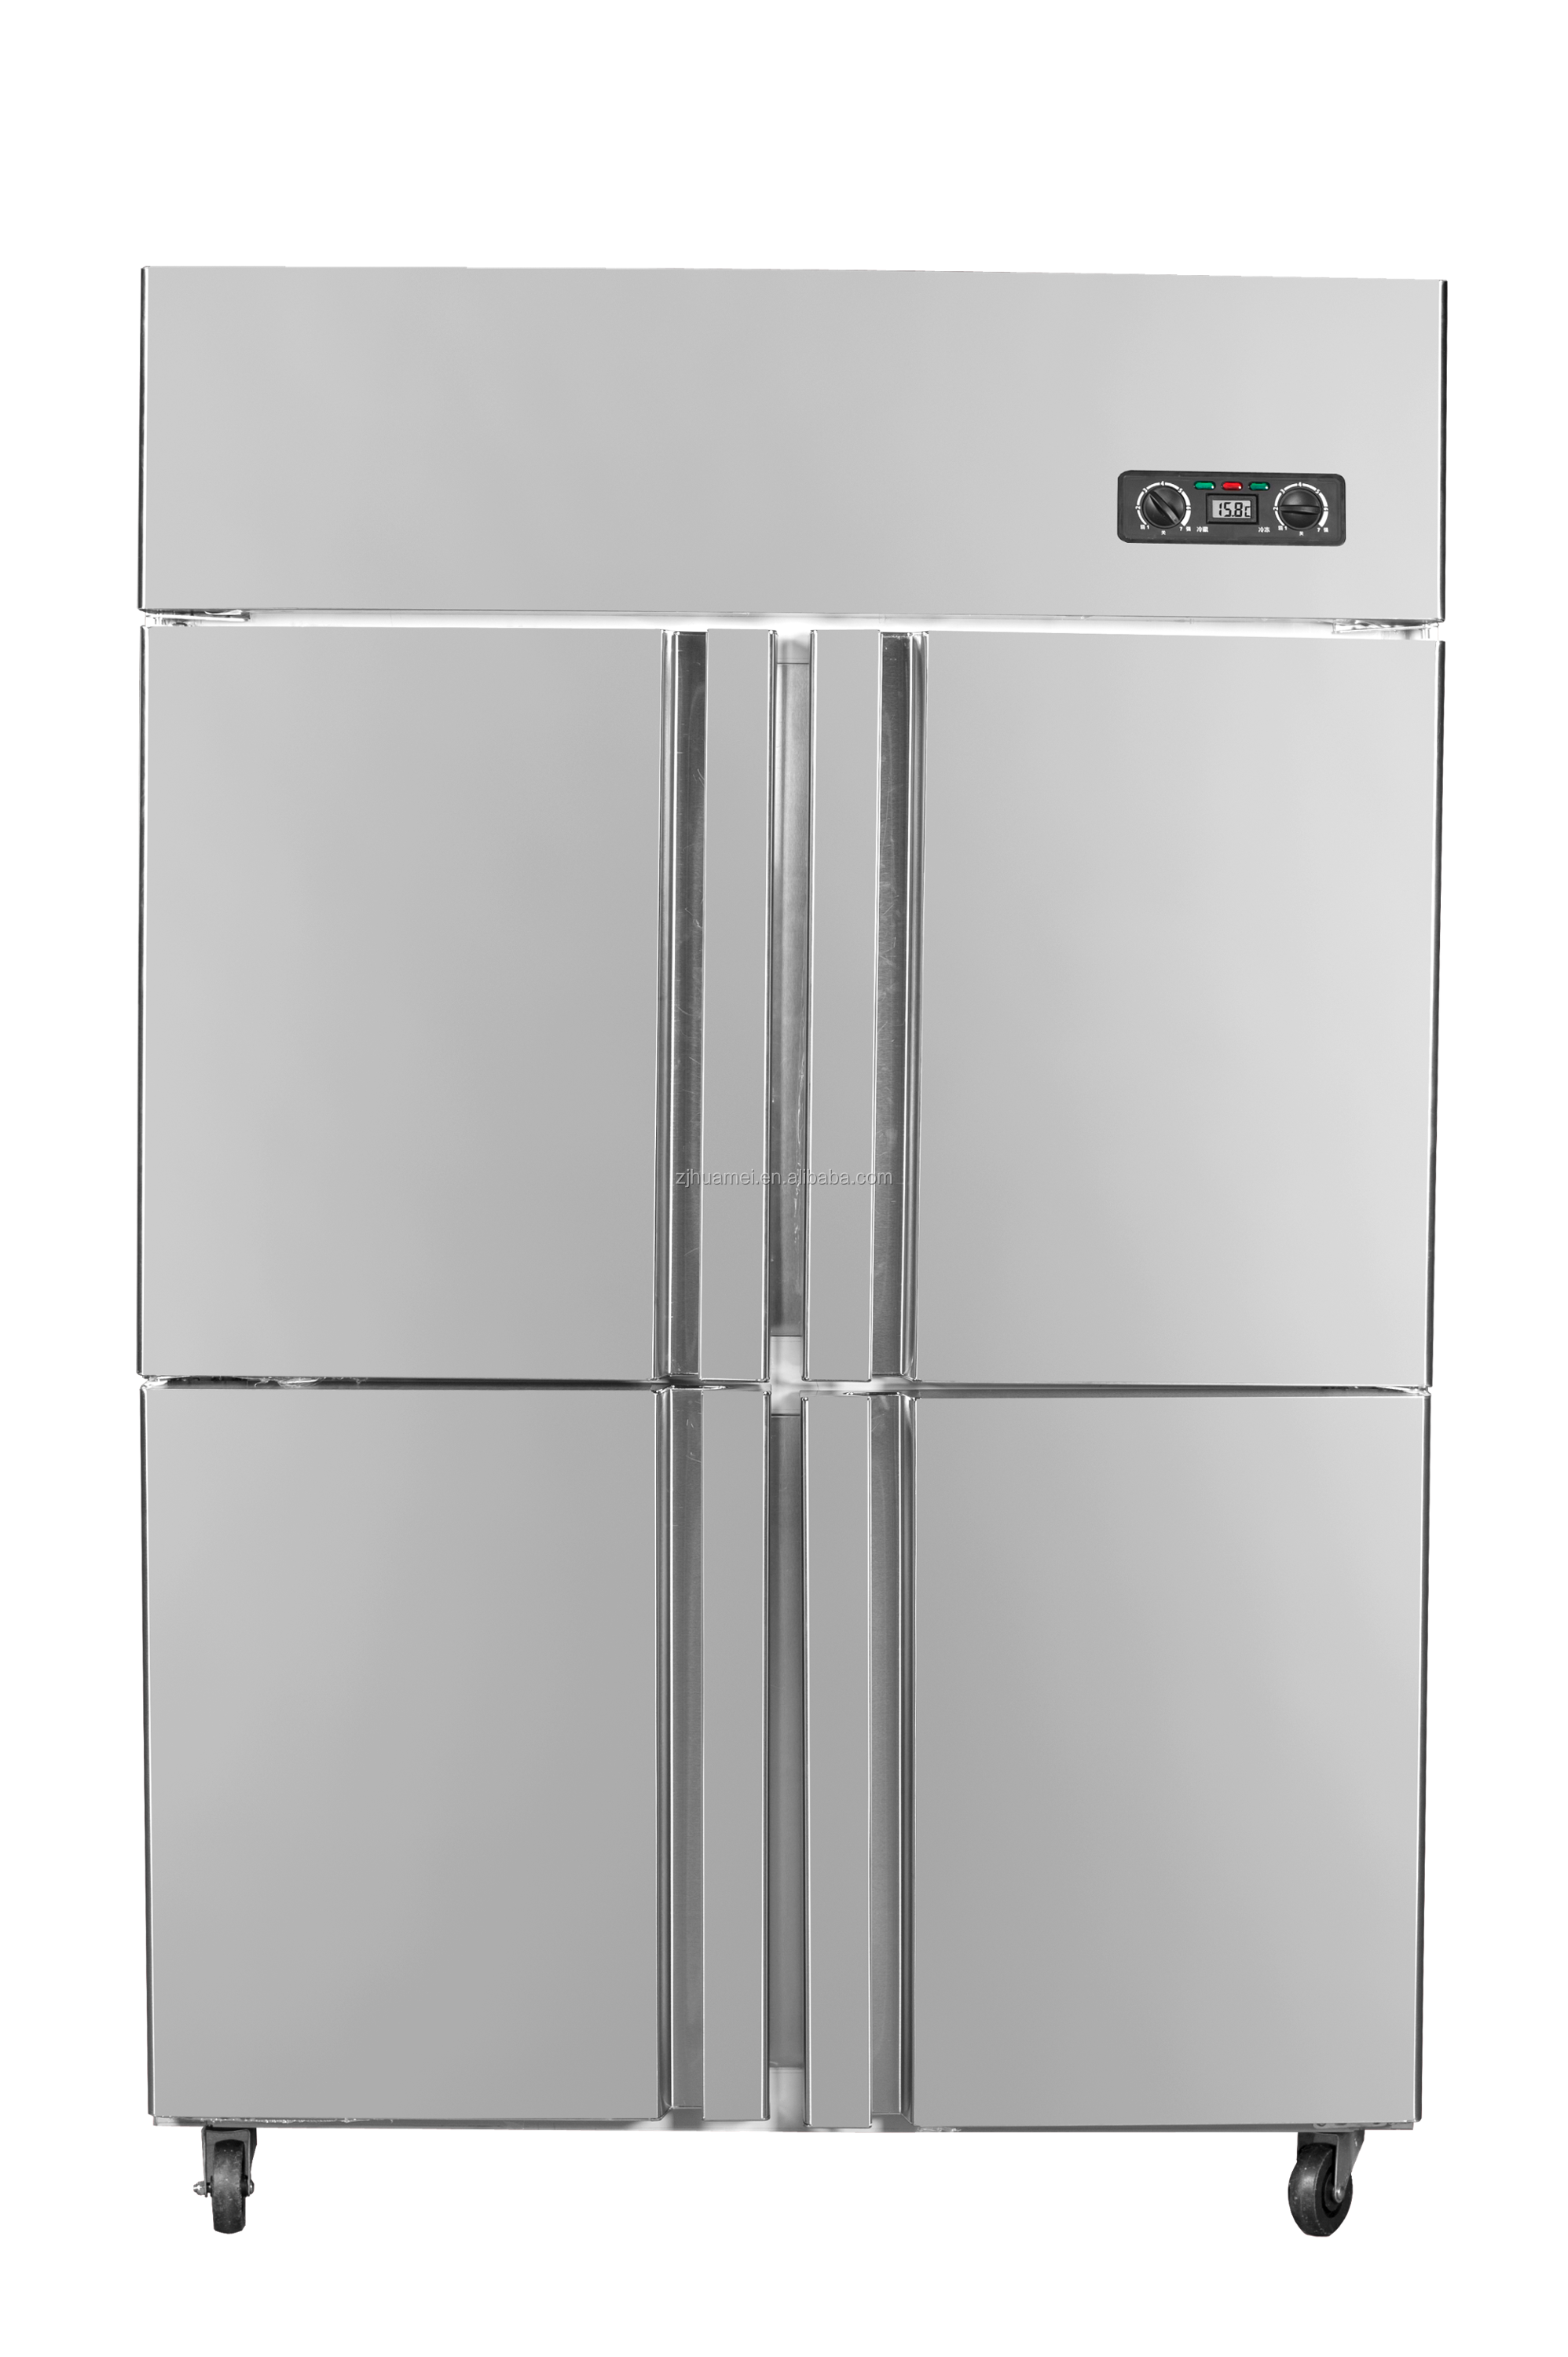 door refrigerator prod stainless counter steel hei cu wid qlt ft depth kenmore french p